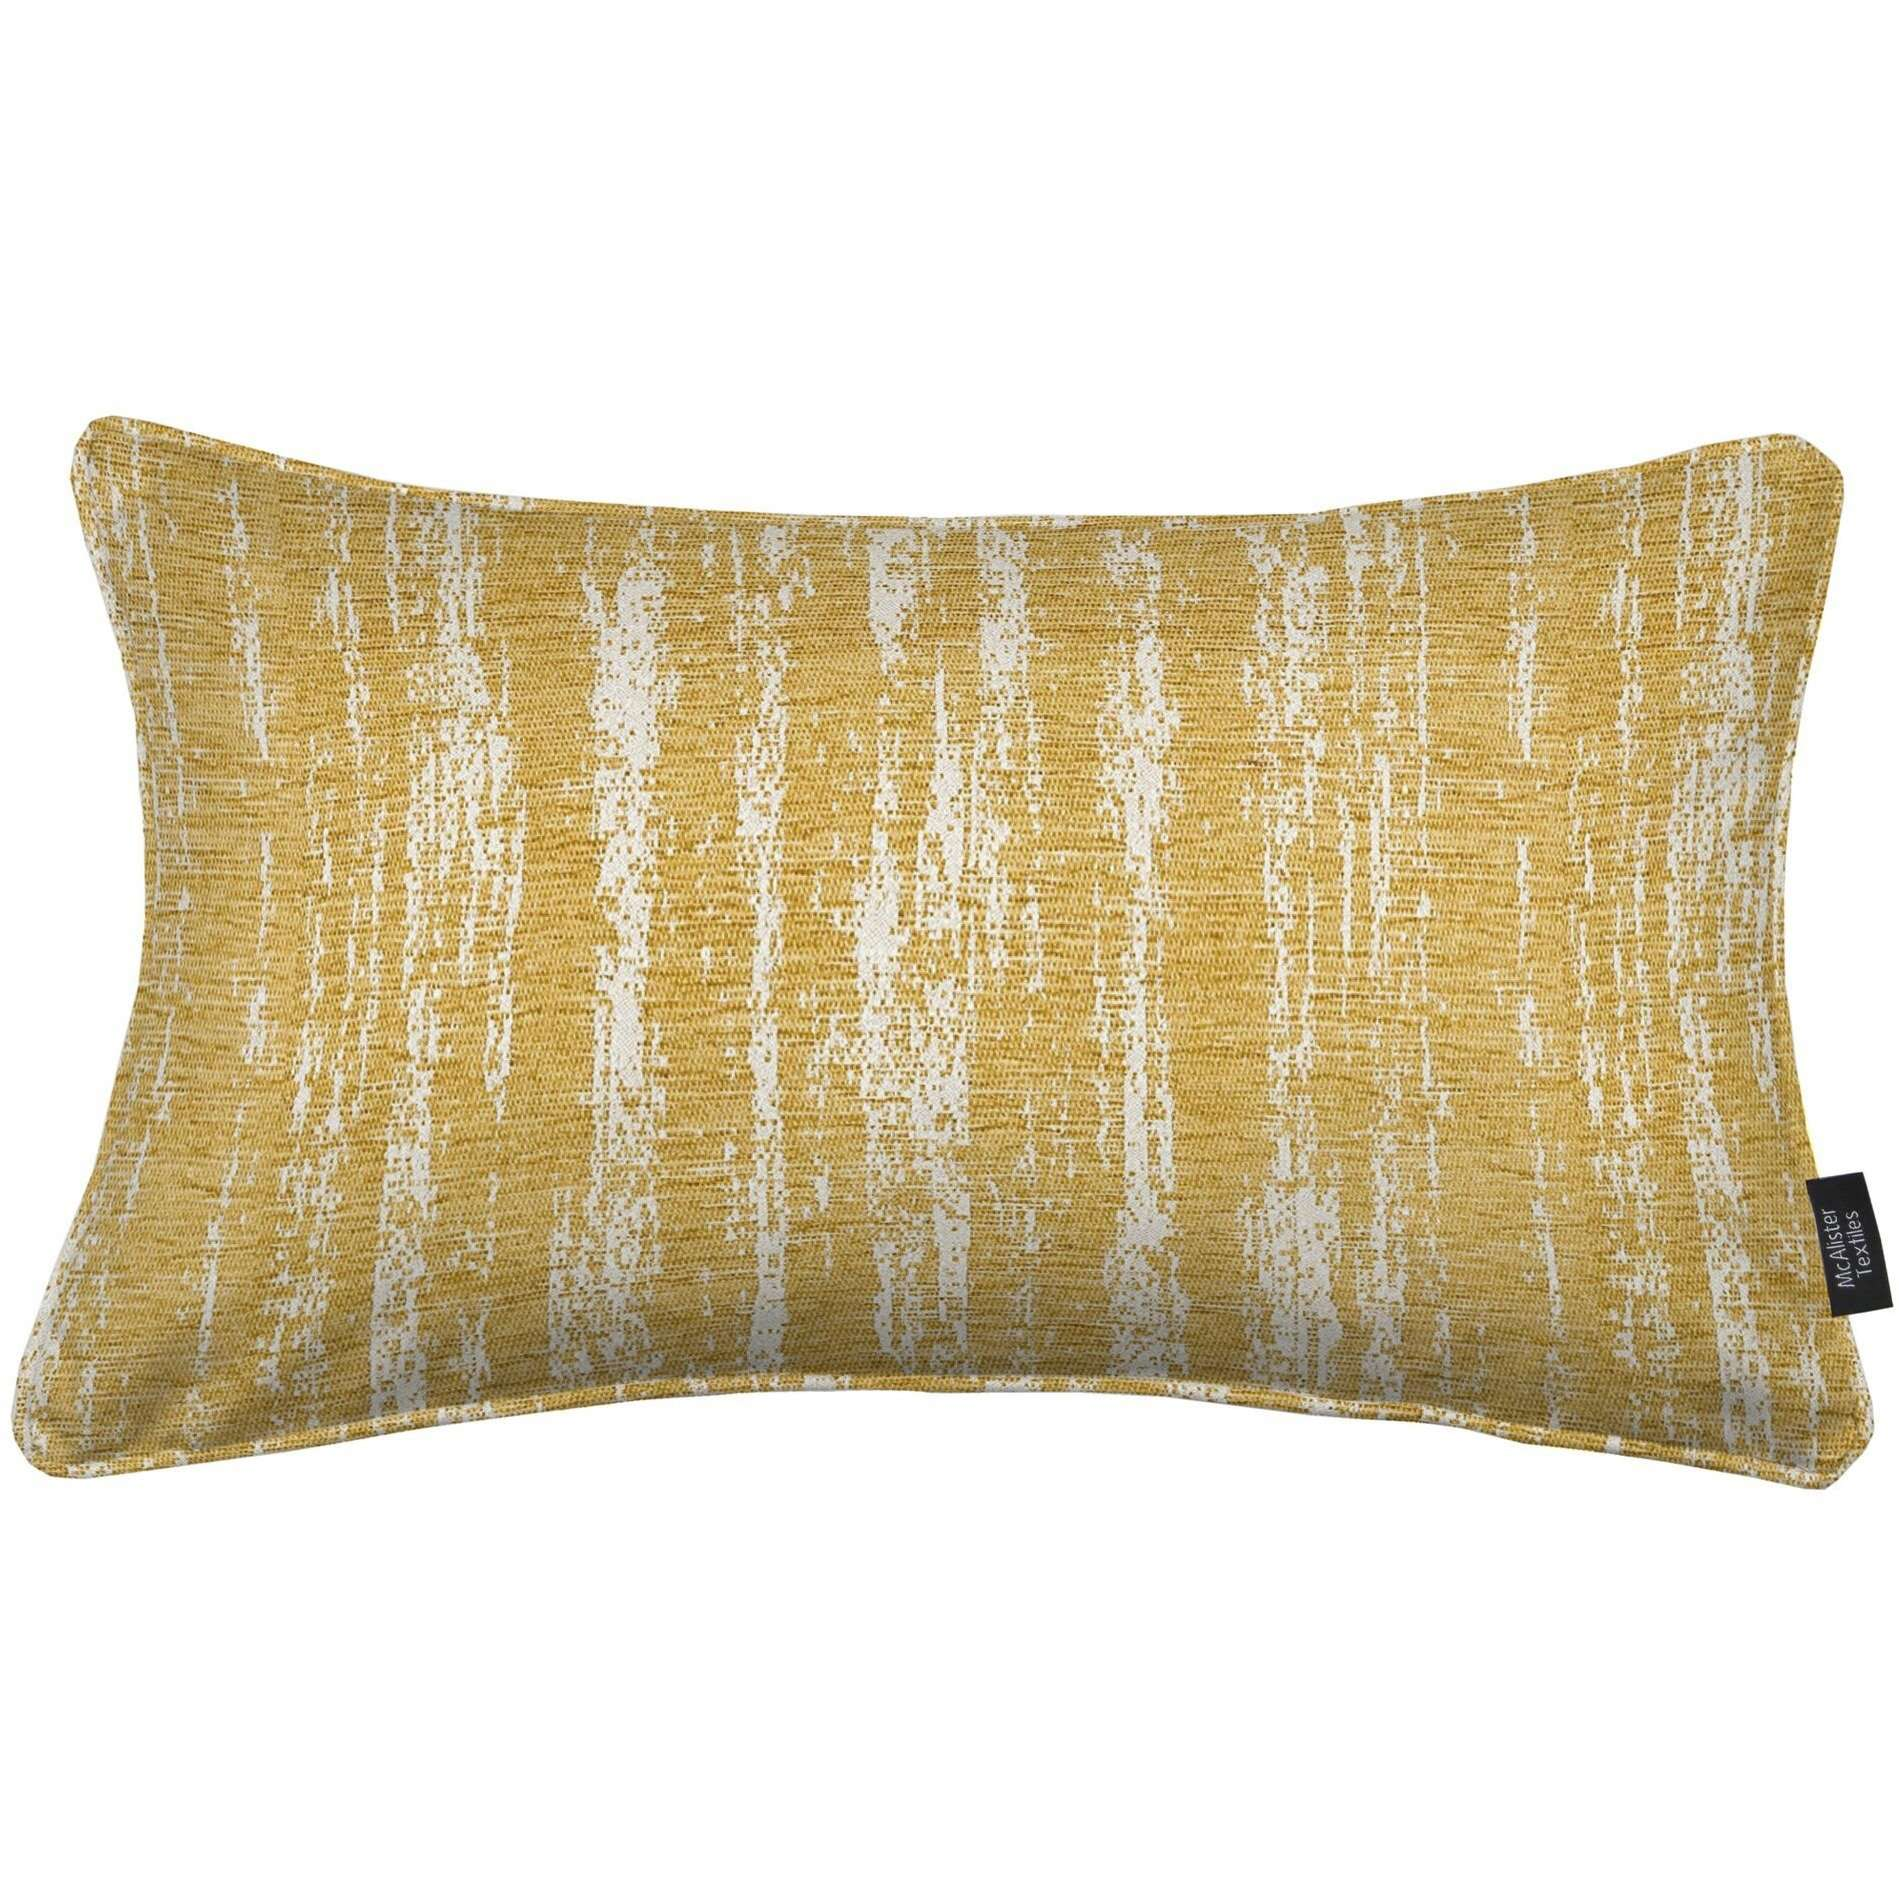 McAlister Textiles Textured Chenille Mustard Yellow Cushion Cushions and Covers Cover Only 50cm x 30cm